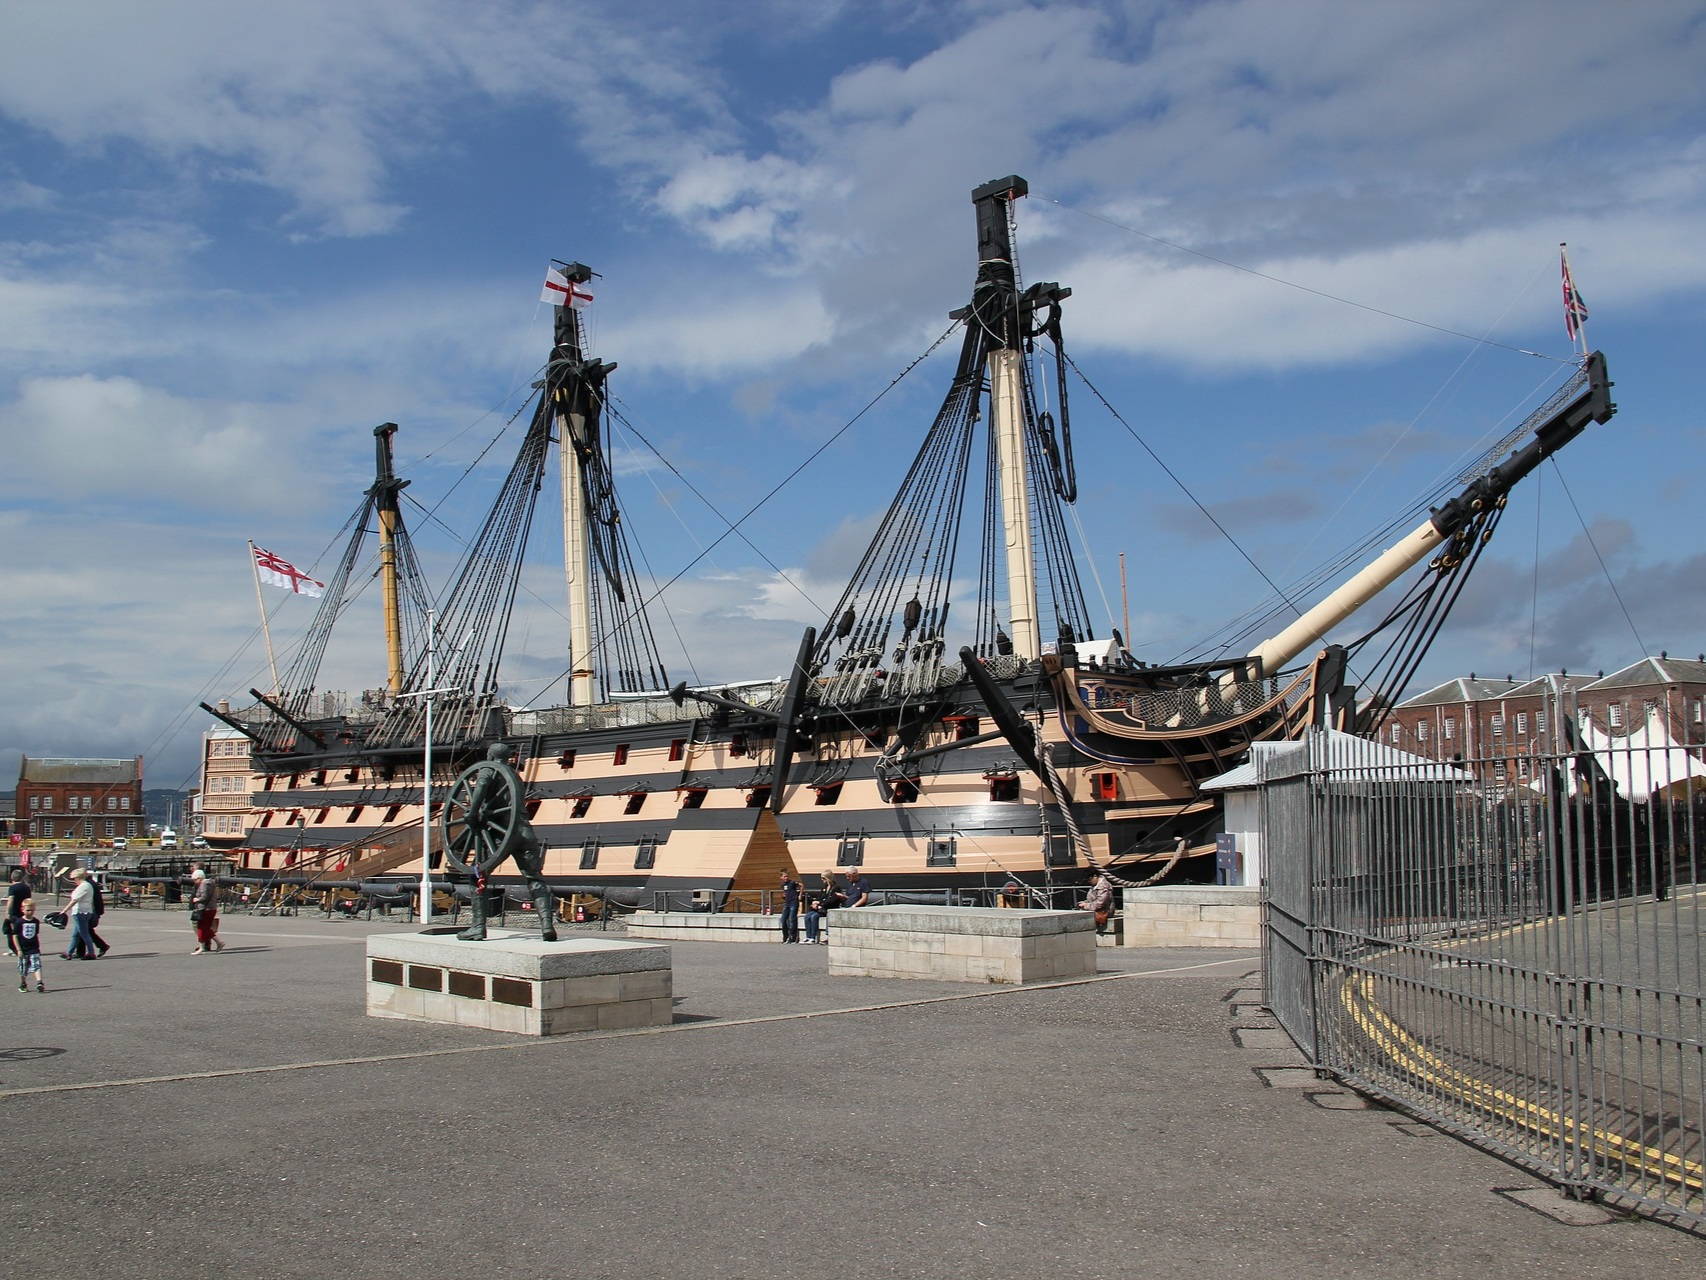 HMS Warrior in the Historic Dockyard